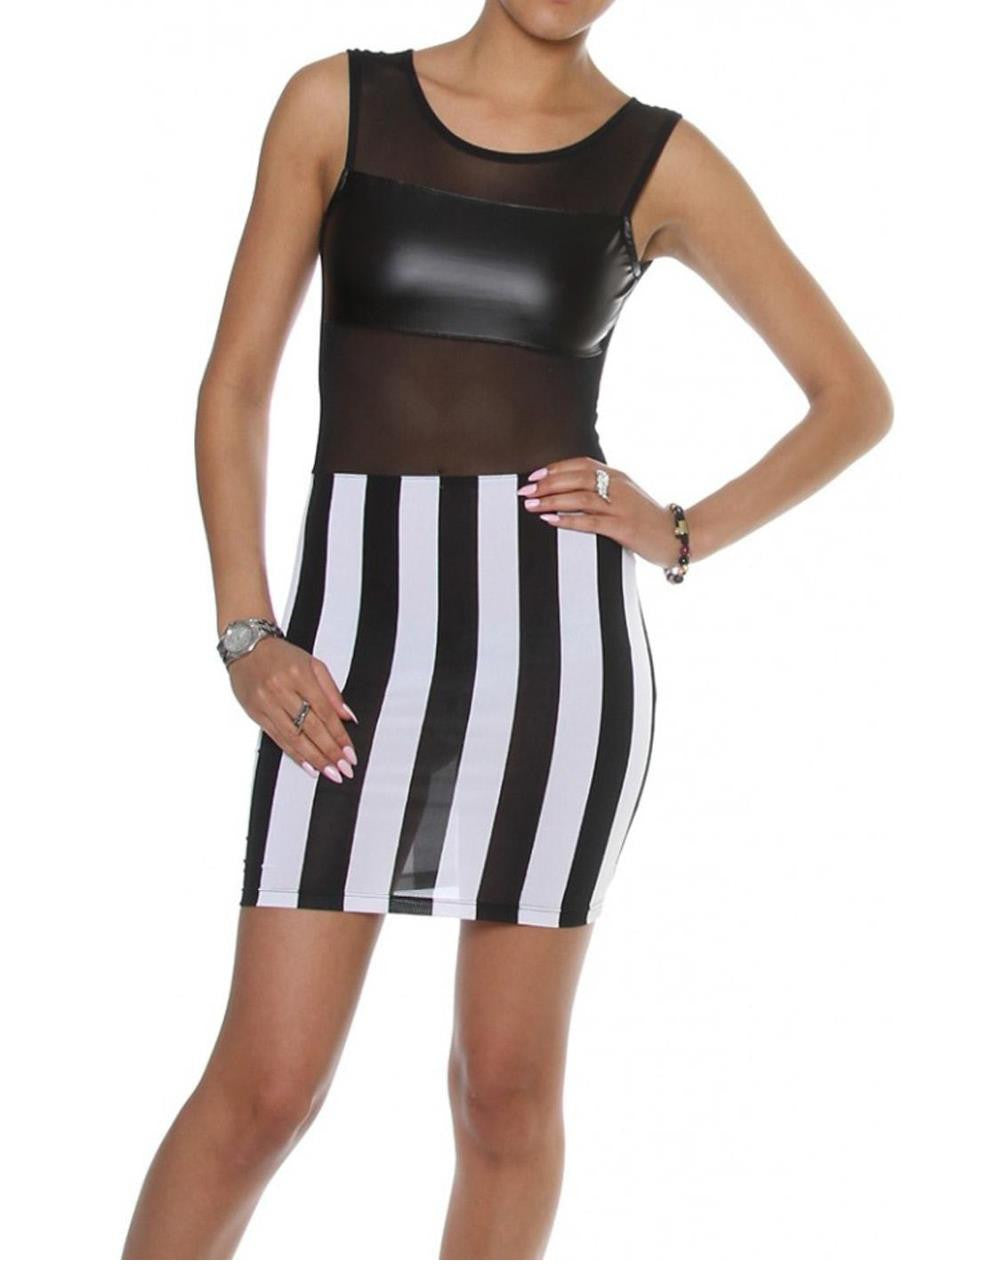 Hot Sale Fashion Sleeveless Black and white Mesh Inserted Leather Dress - Sins & Temptations